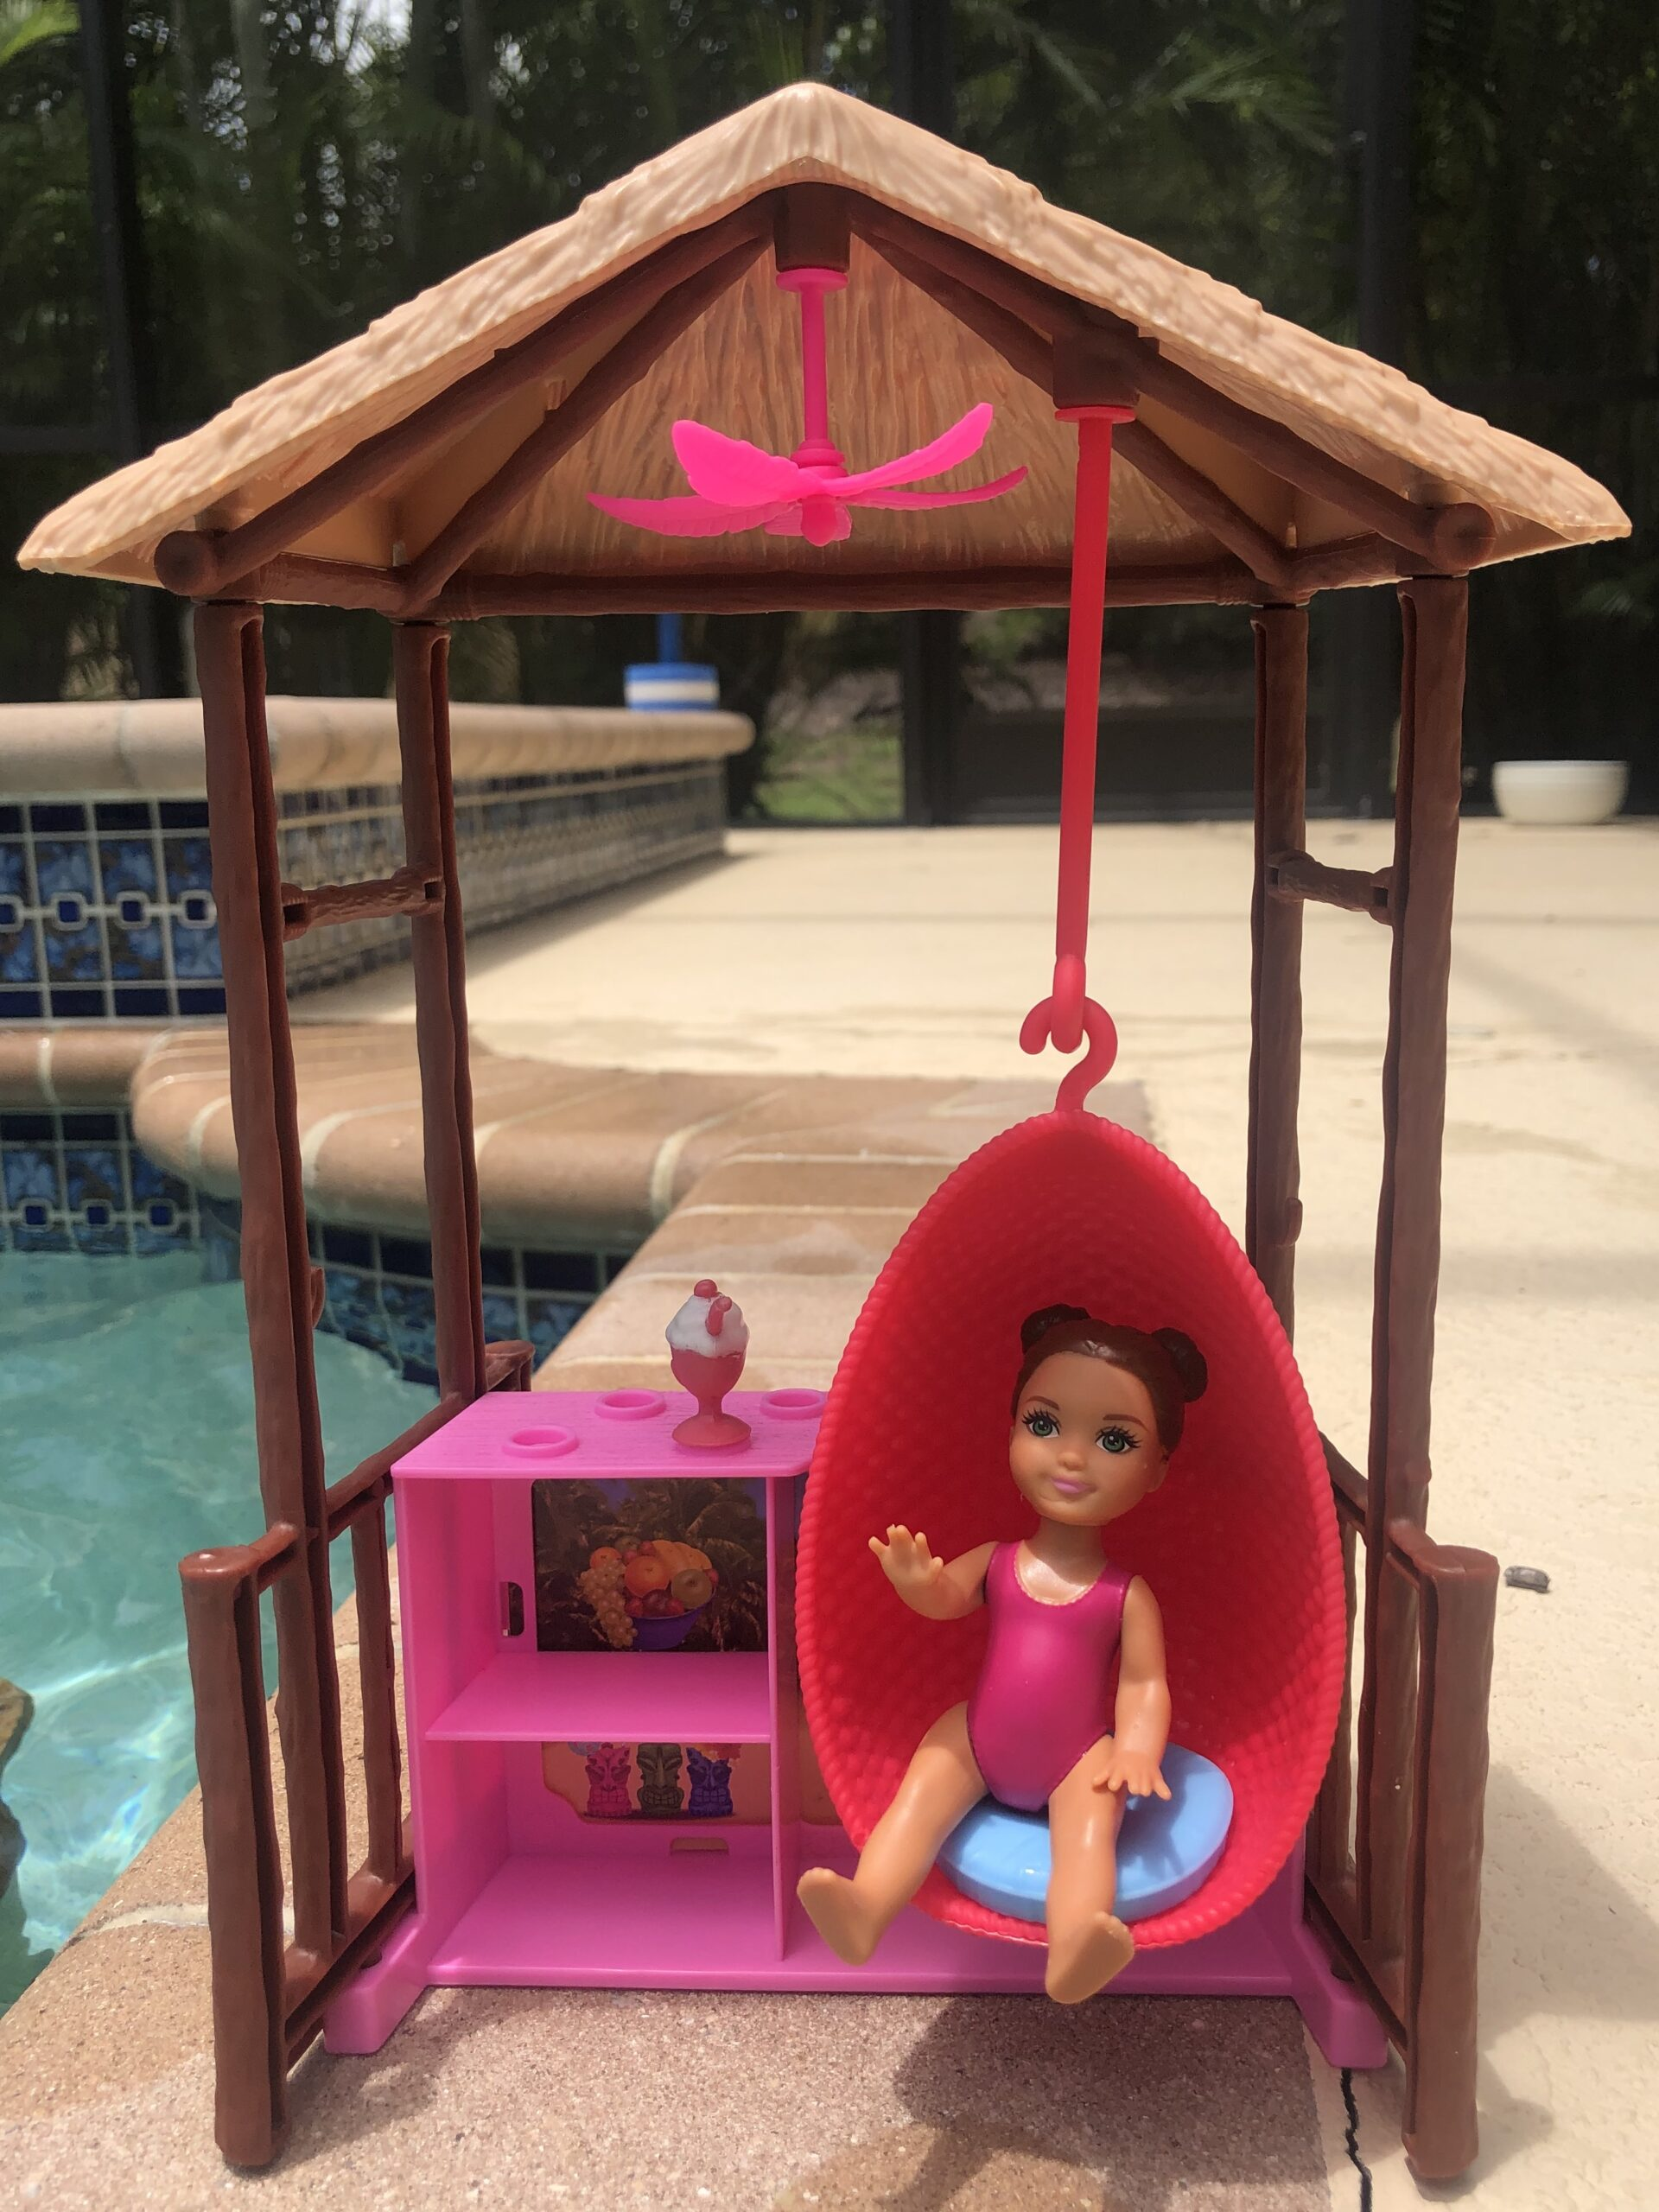 A baby Barbie Doll sitting in a swinging chair outside for the Barbie Doll Story.